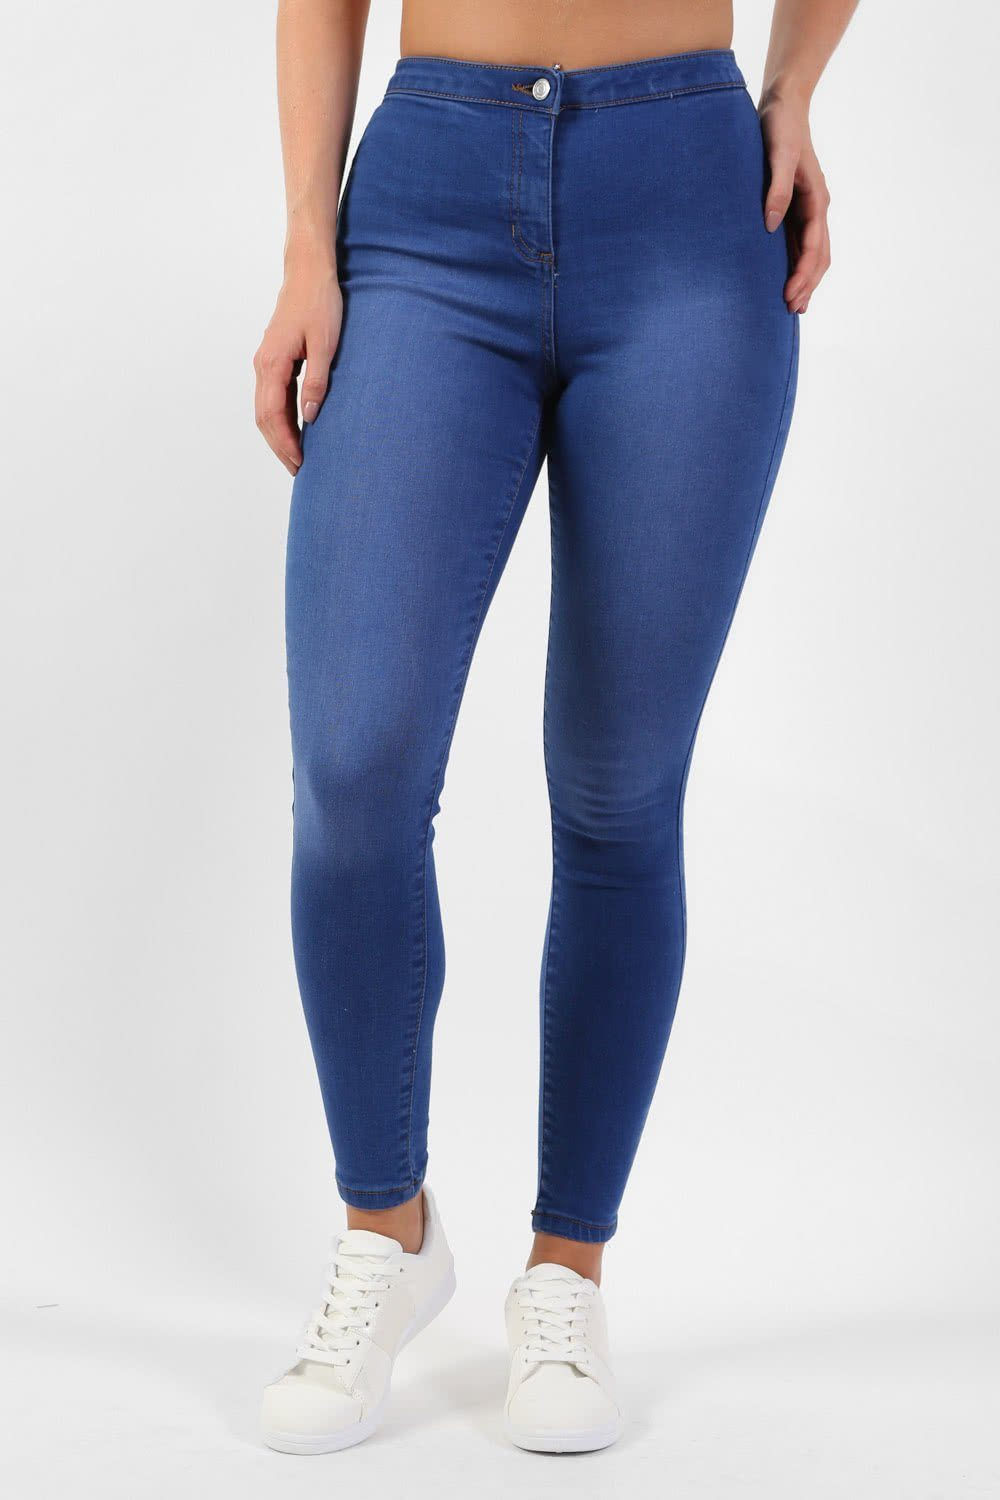 High Waisted Stretch Denim Skinny Jeans in Denim 0